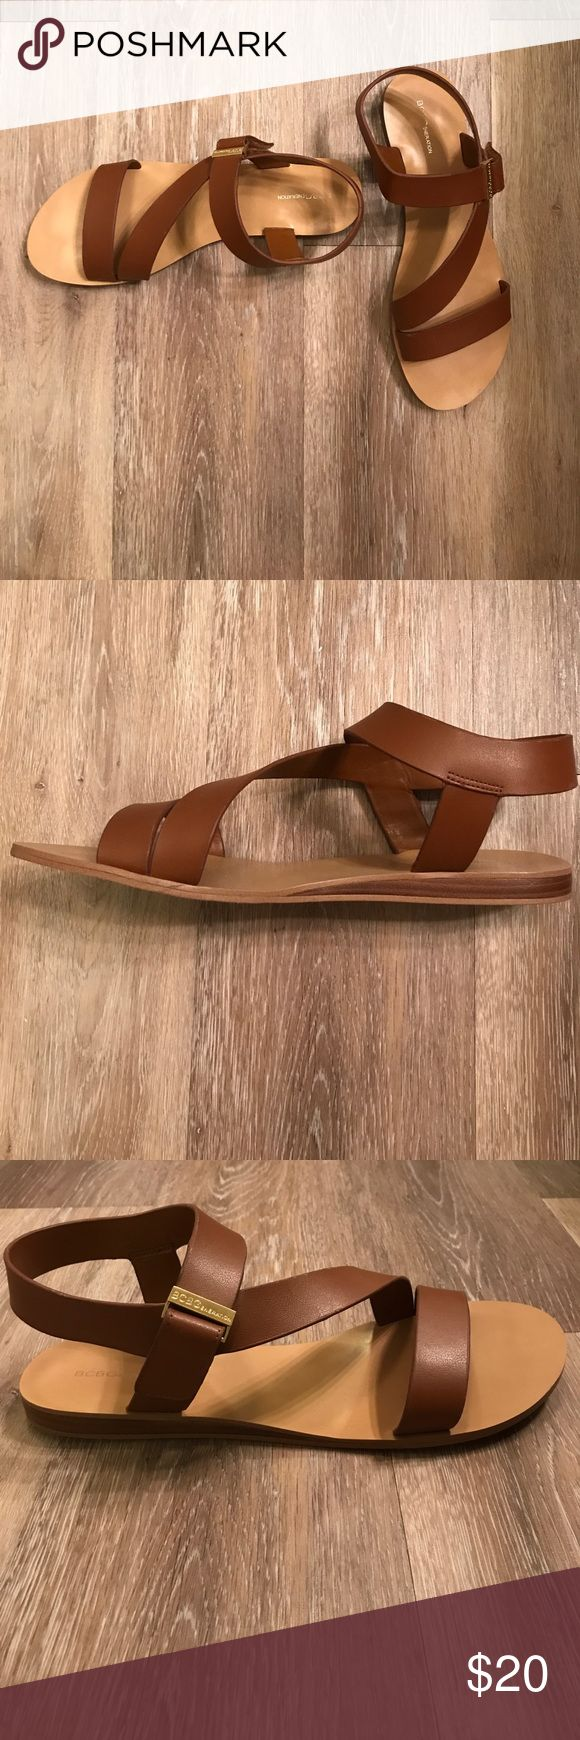 BCBGeneration strappy brown sandals Lightly worn BCBGeneration sandal with Velcro fastener to adjust for any size foot/ankle BCBGeneration Shoes Sandals